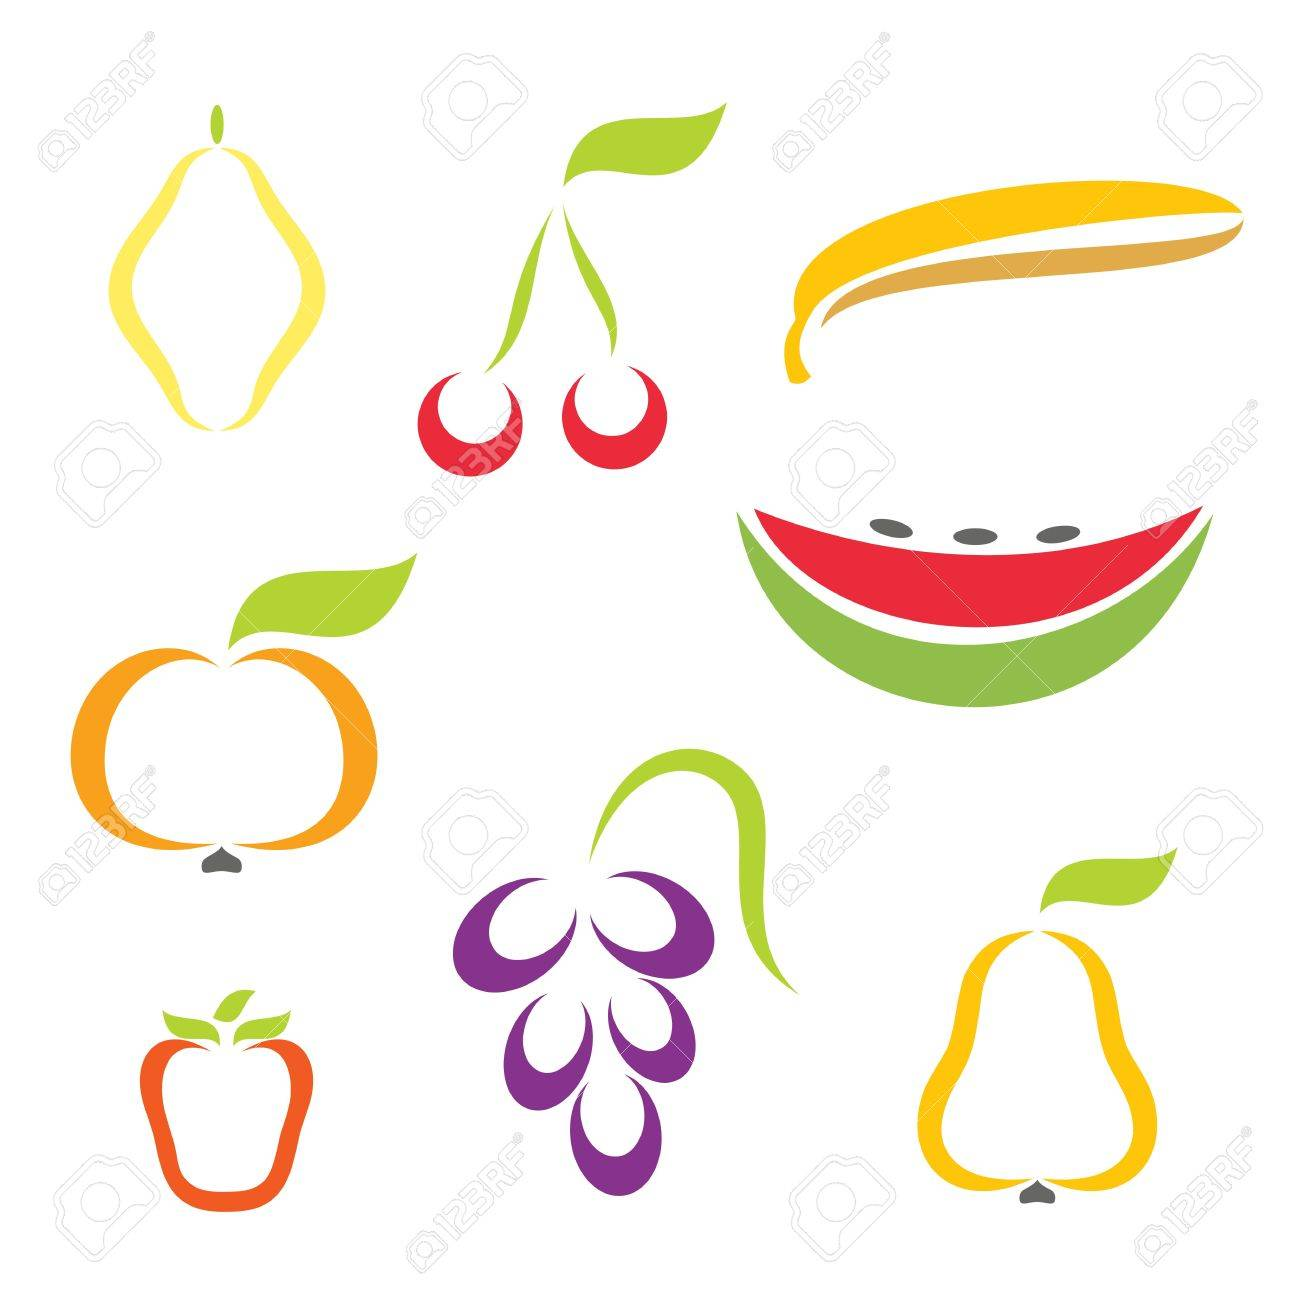 Silhouette icons of various fruit. Stock Vector - 6823497